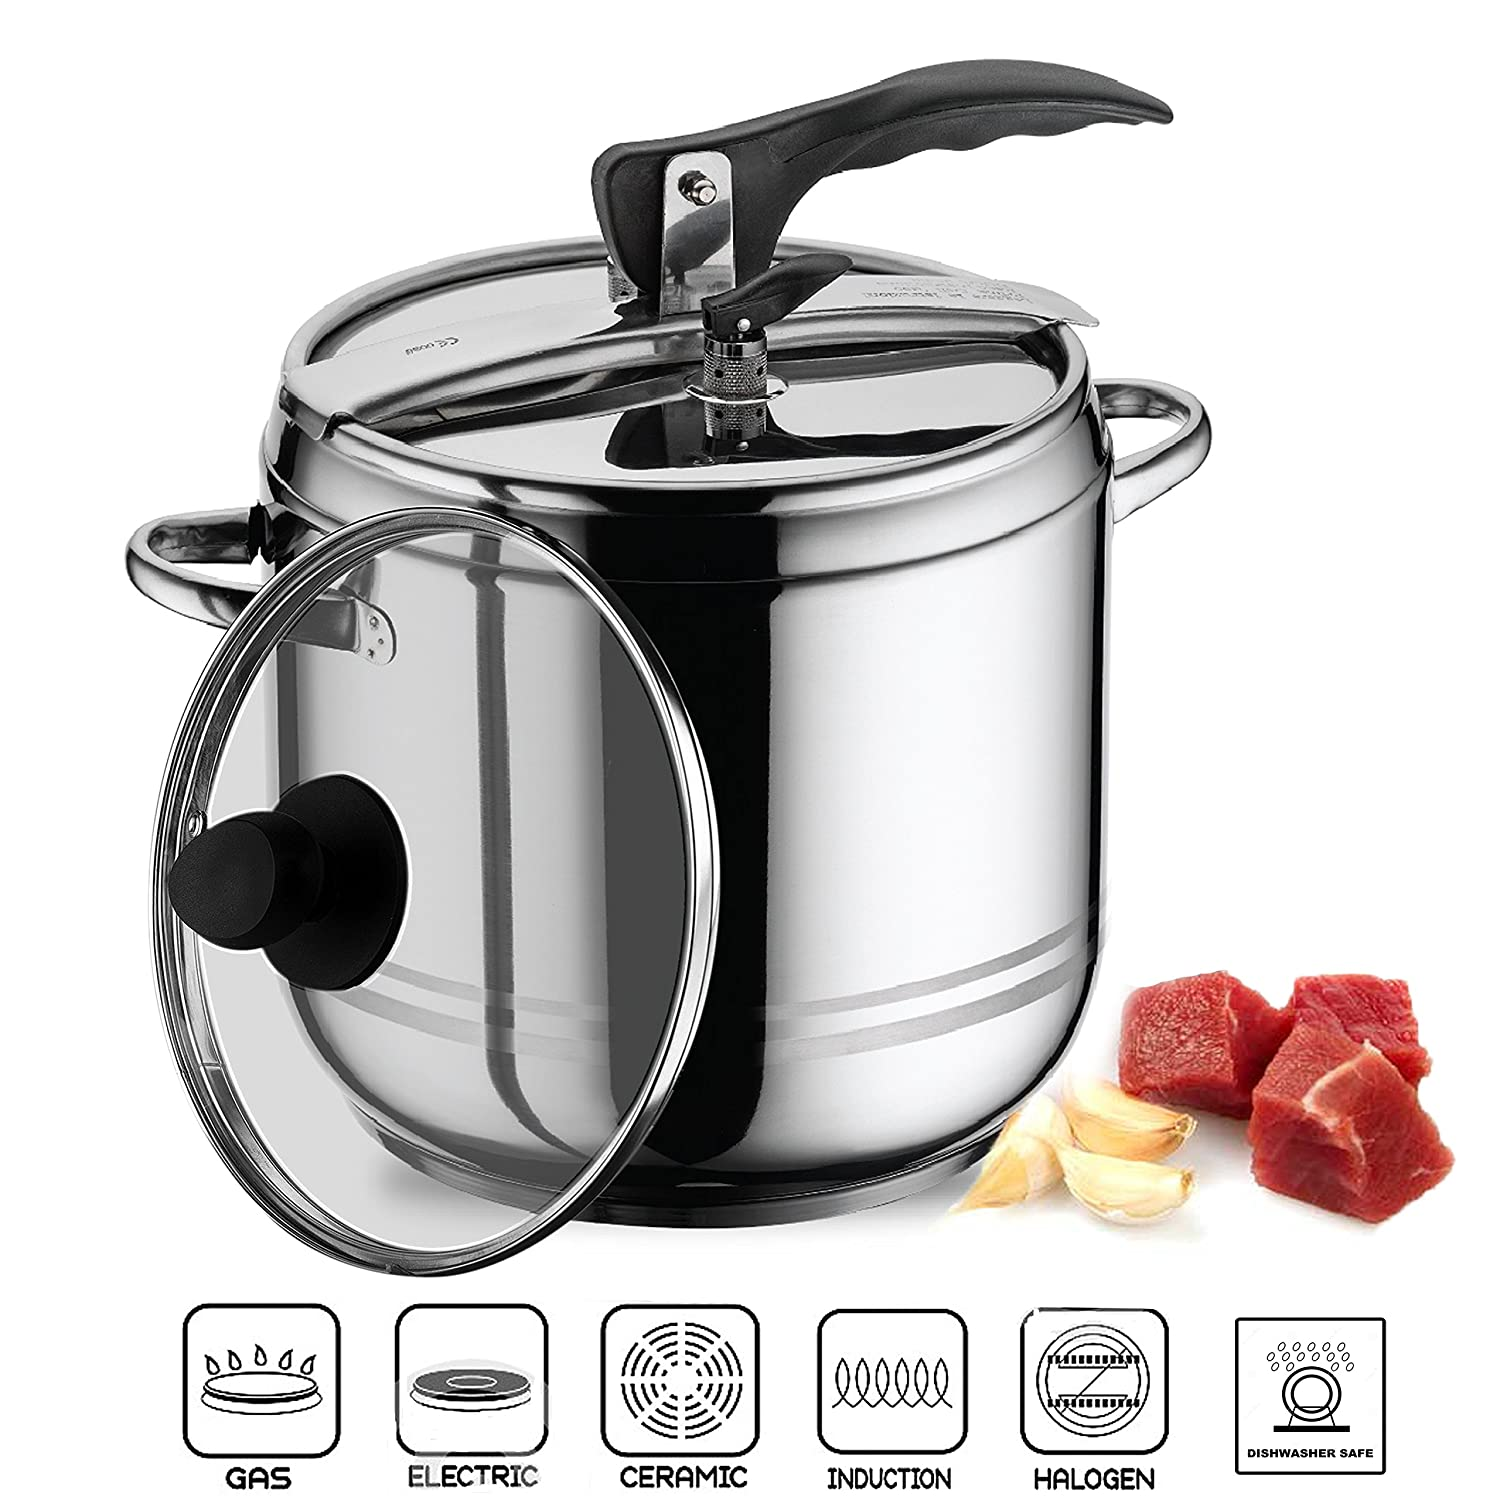 2 in 1 Stainless Steel Stovetop Pressure Cooker Stockpot With Glass Lid (5 L) UK Buy Zone